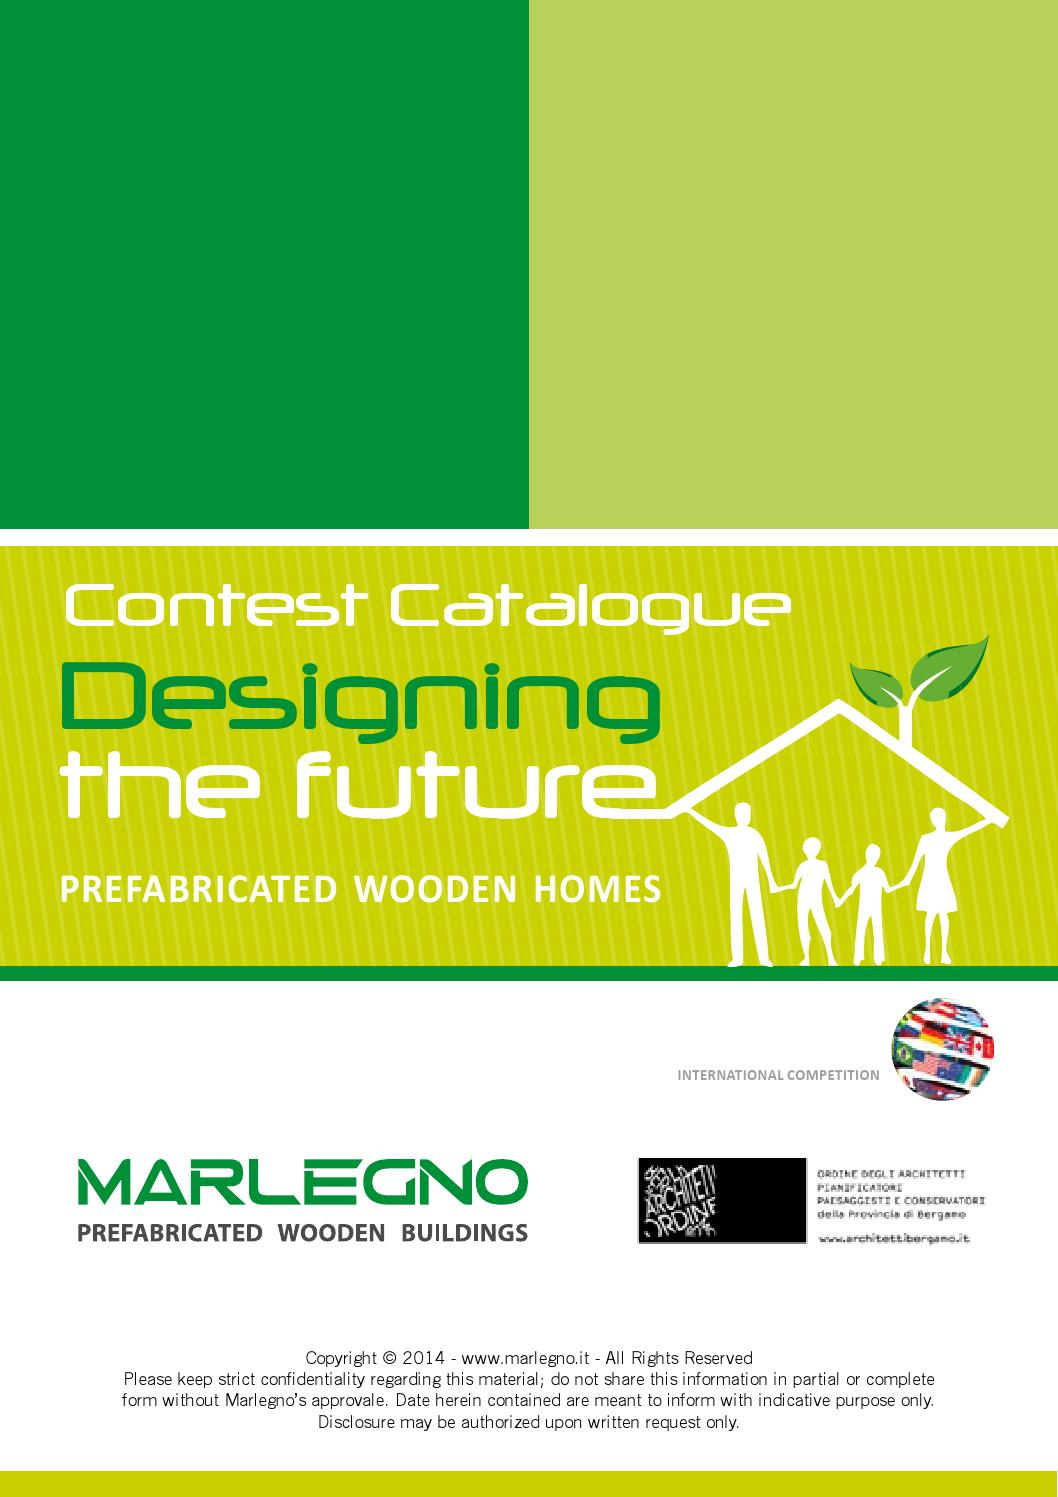 Contest catalogue designing the future by marlegno prefabricated wooden buildings issuu